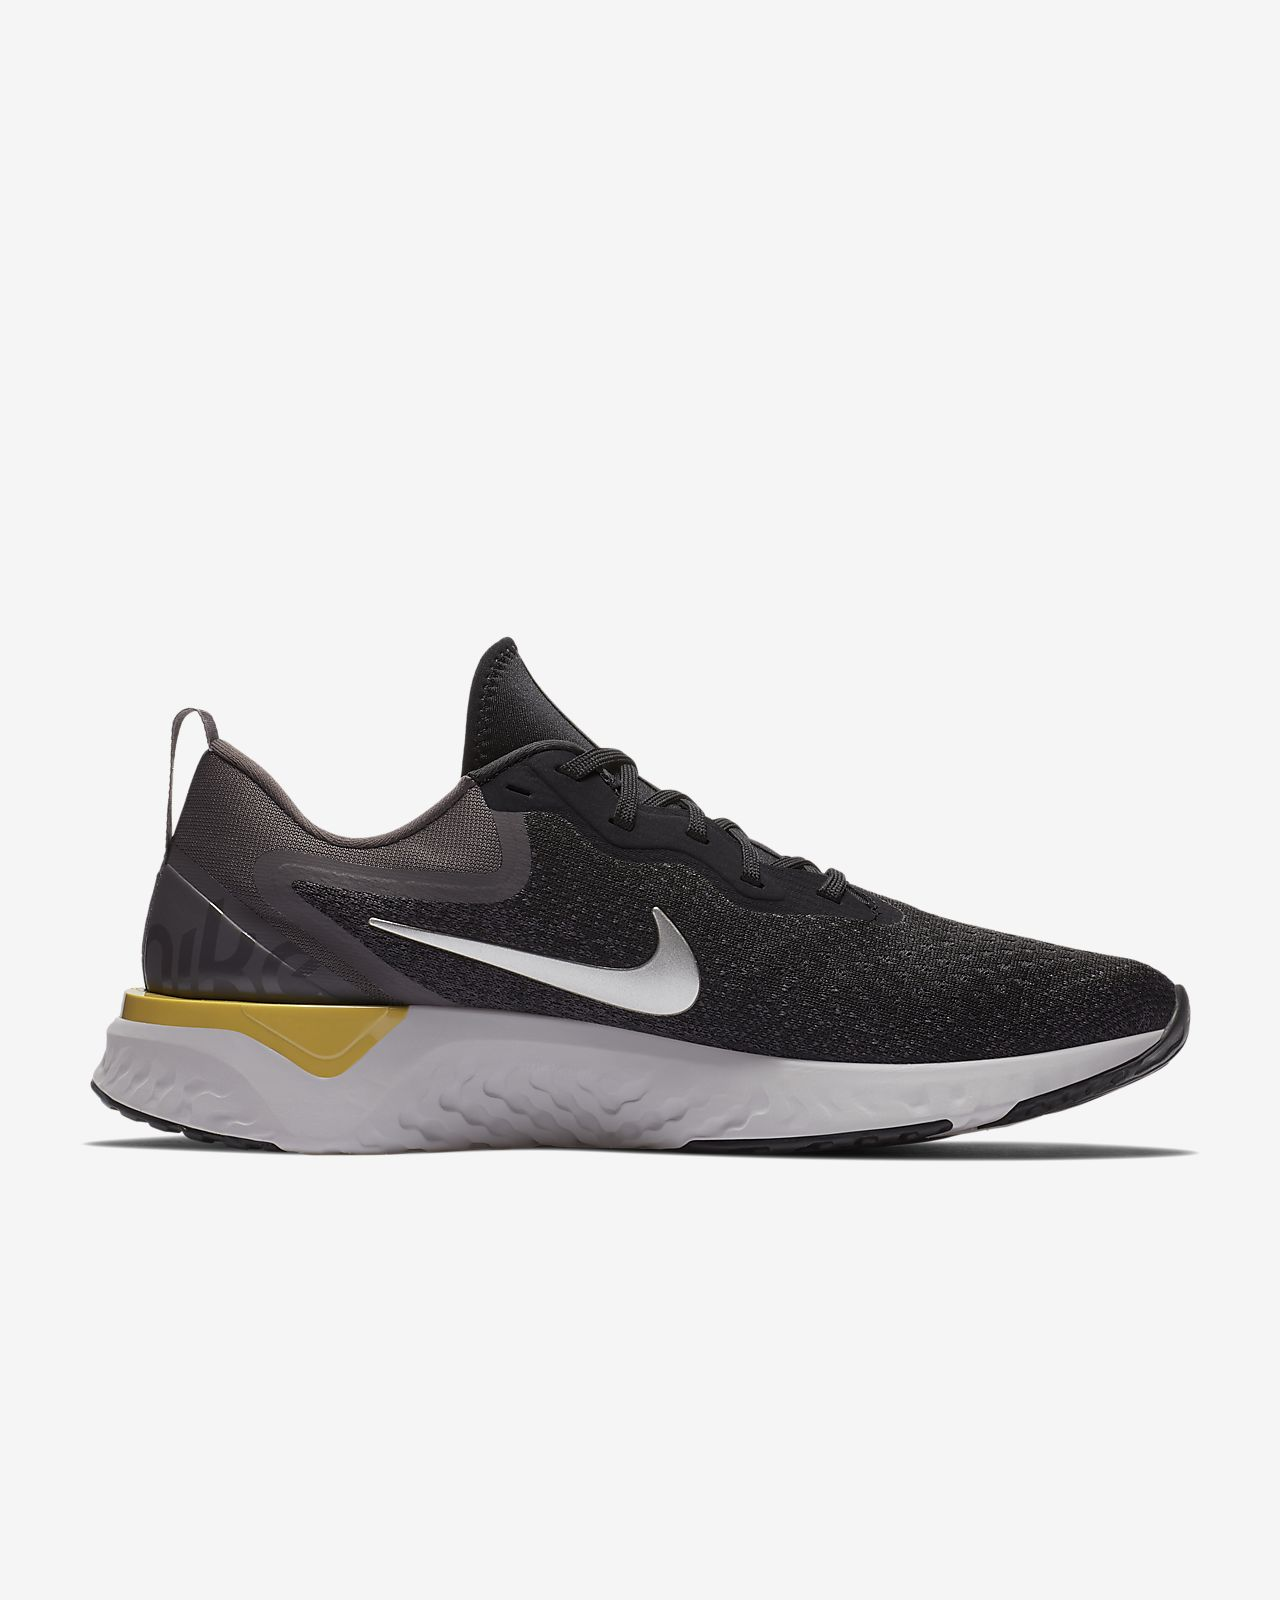 reputable site df816 4ac3a ... Nike Odyssey React Men s Running Shoe